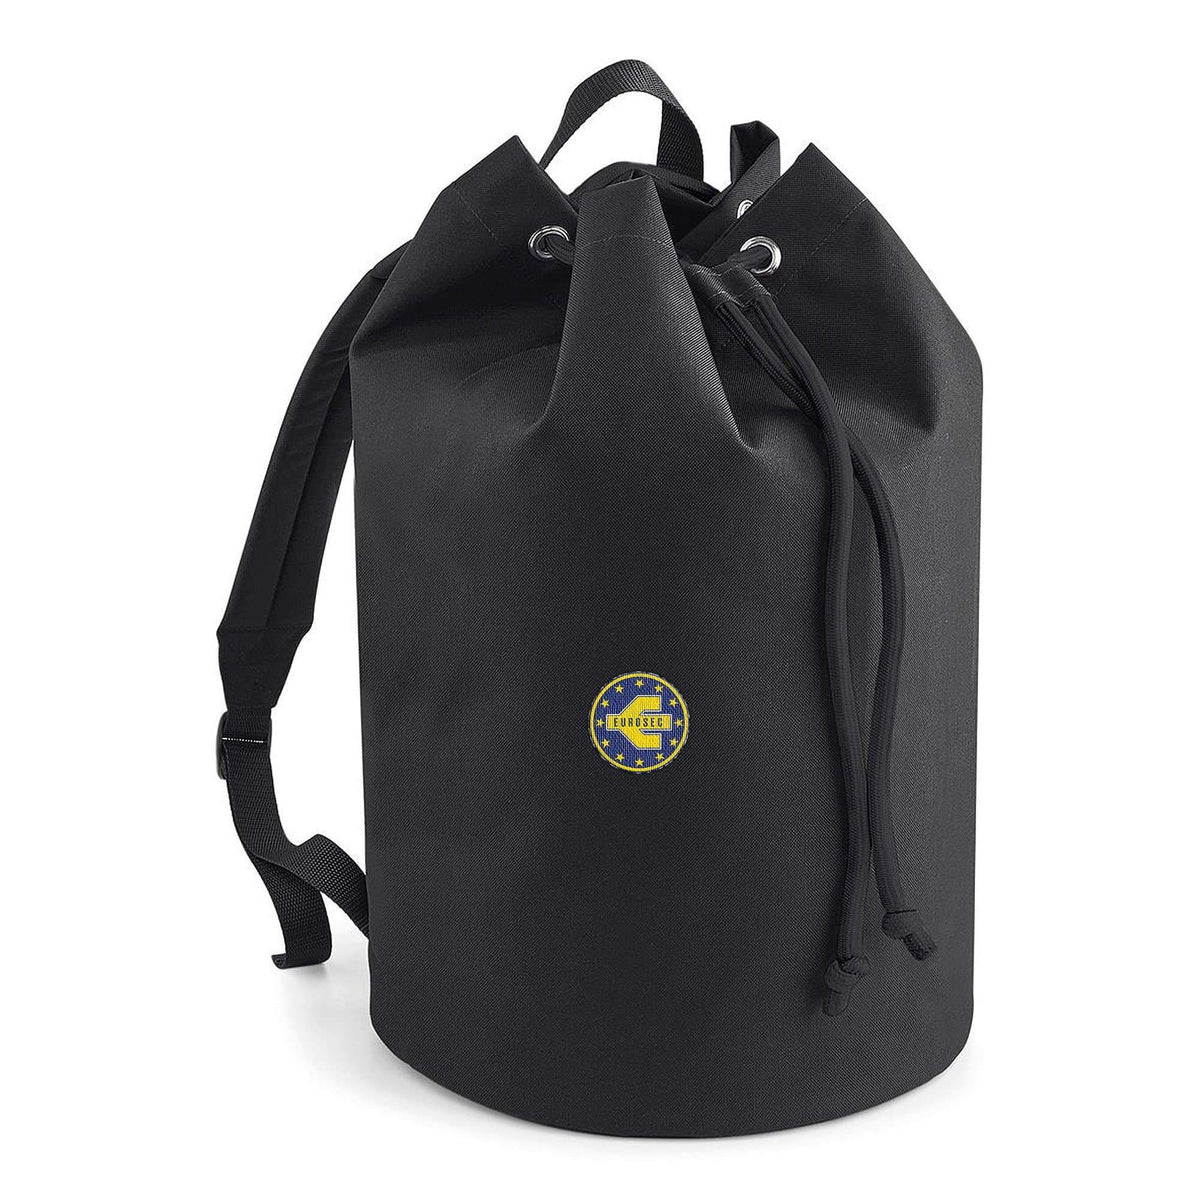 Eurosec Logo Drawstring Backpack - The Gerry Anderson Store